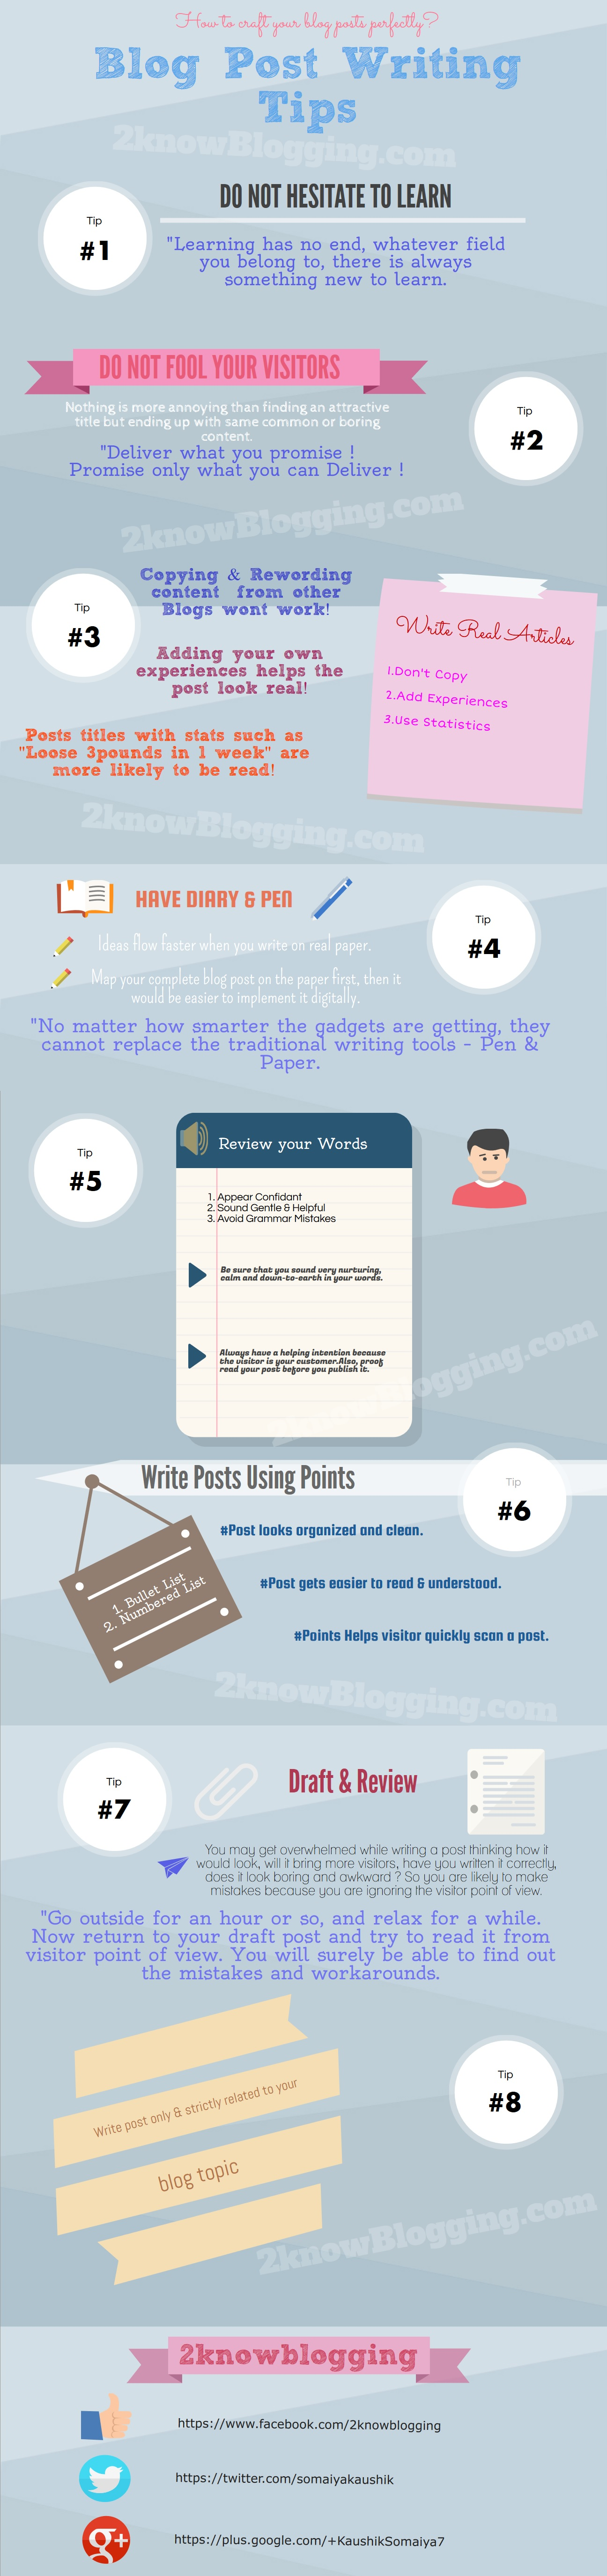 8 awesome blog post writing tips